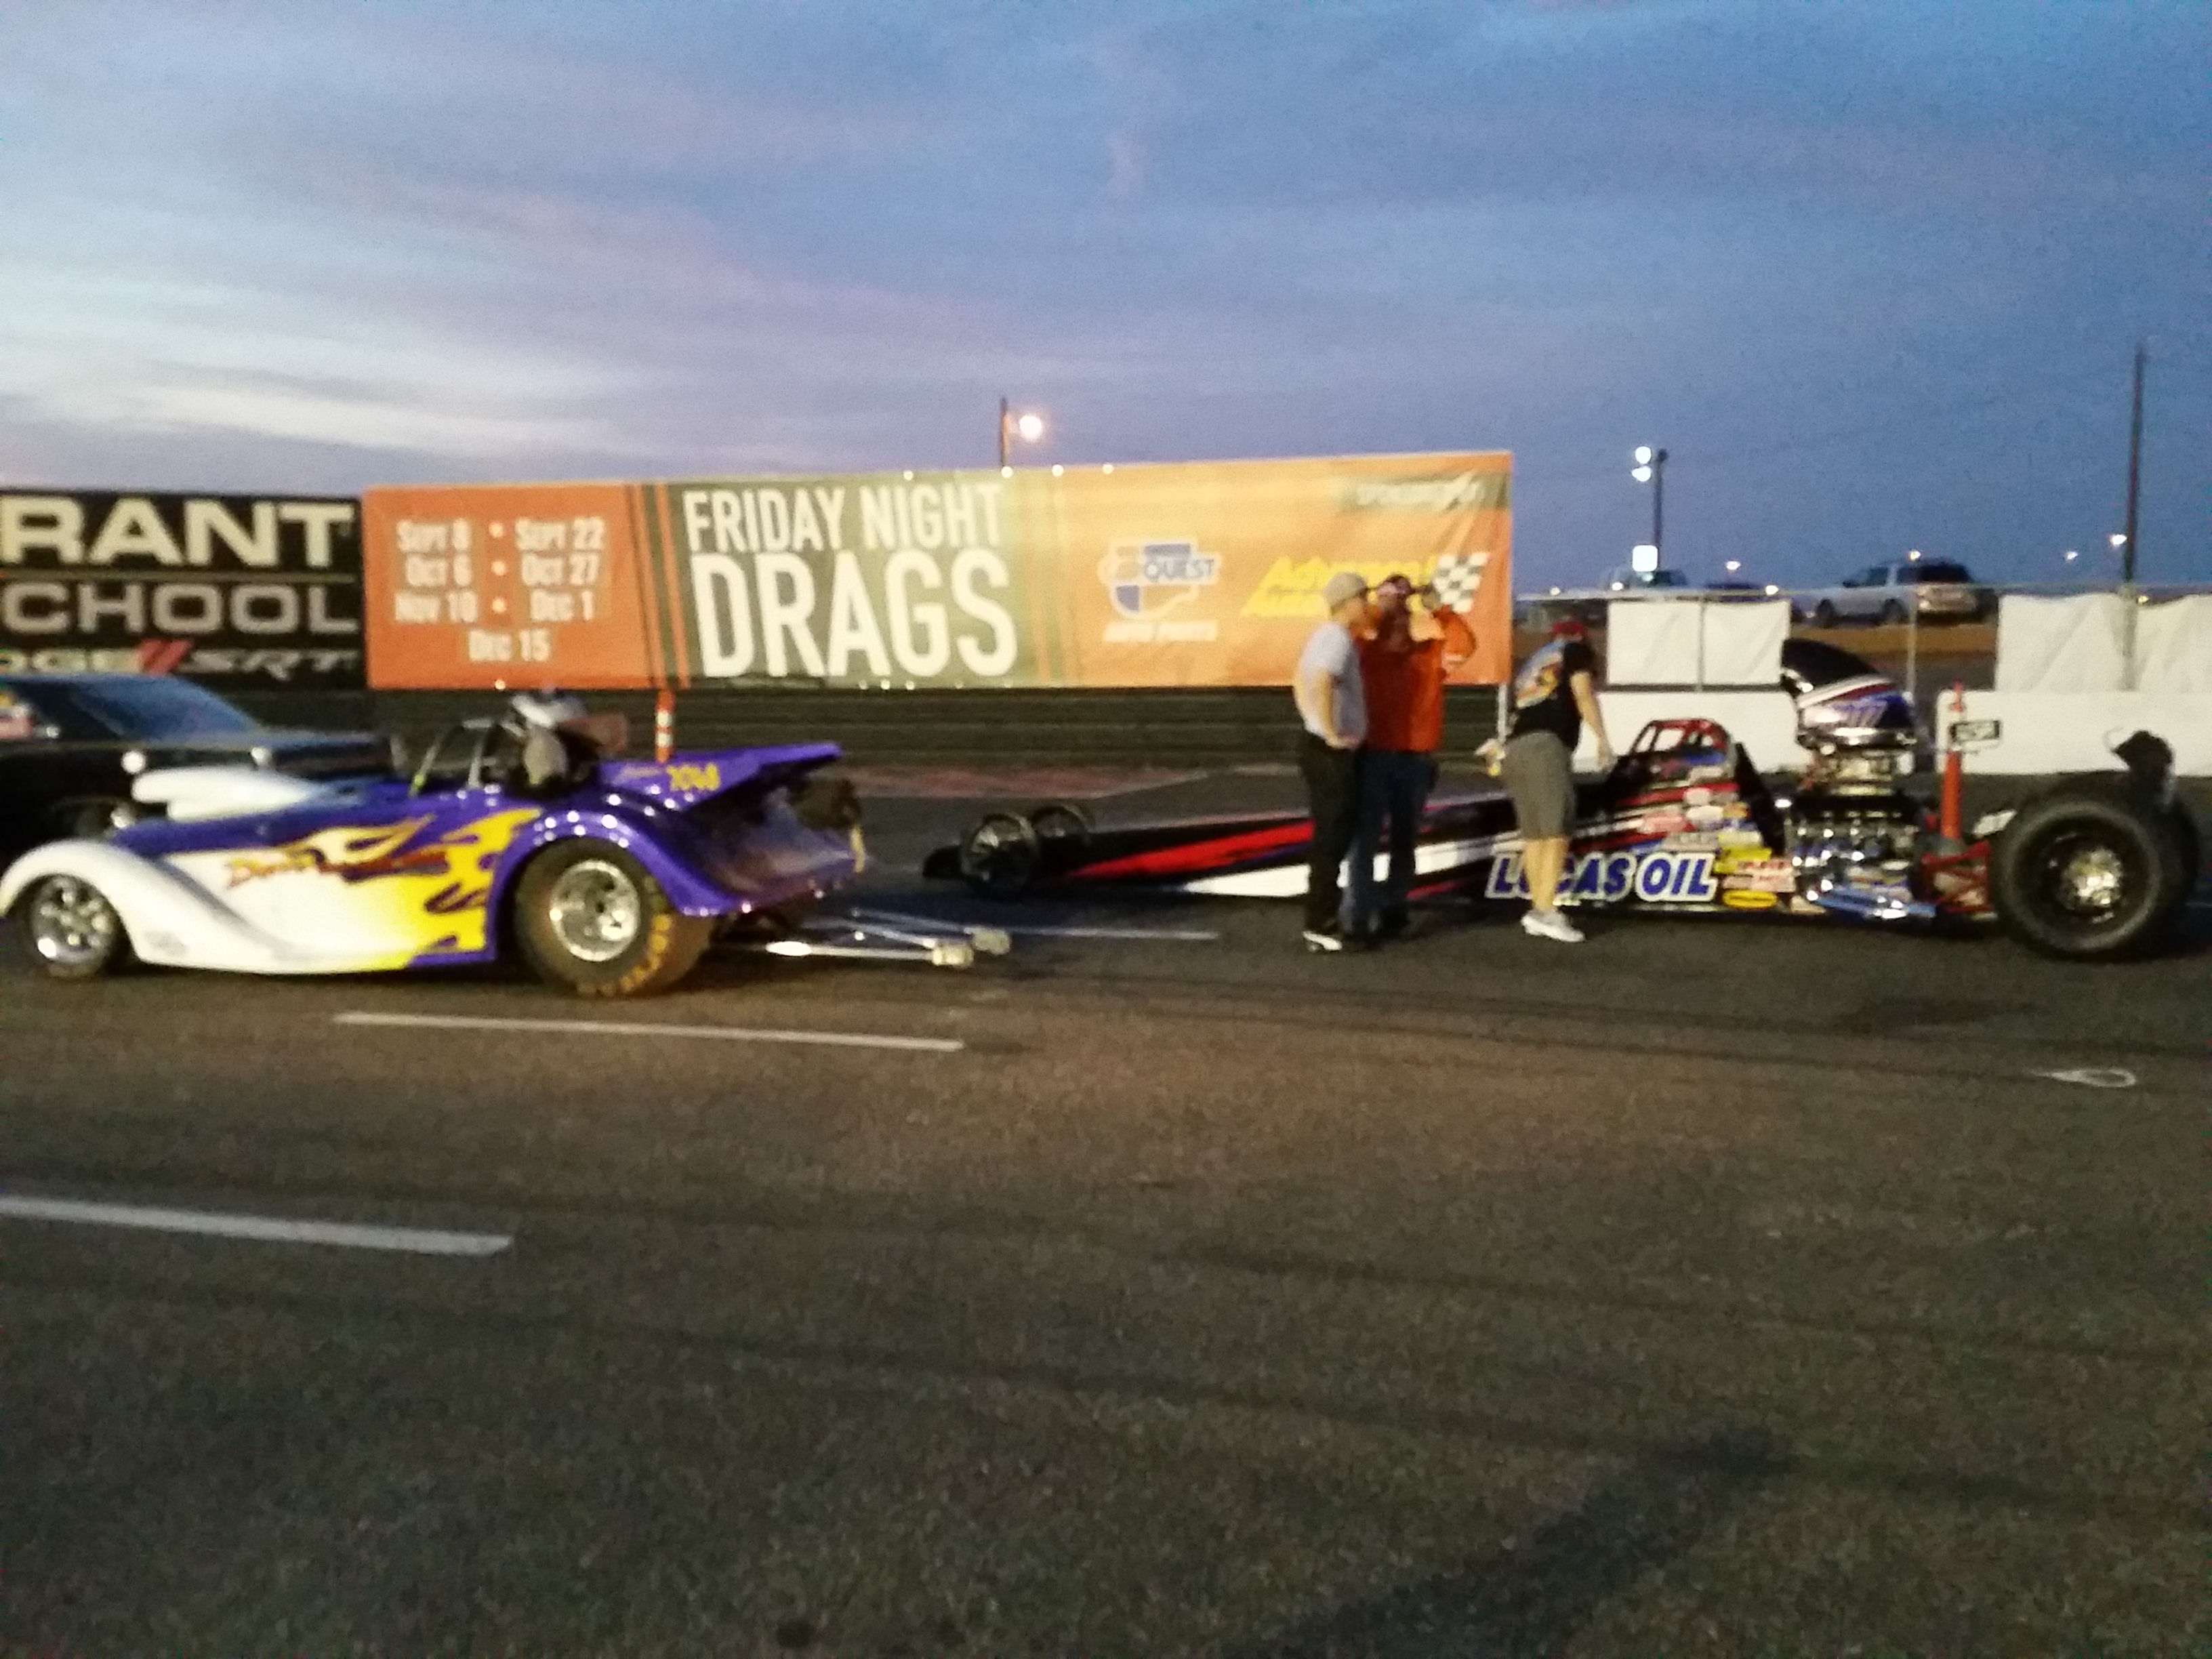 Used Drag Racing Parts Classifieds- OffRoad, Oval Track, Street ...